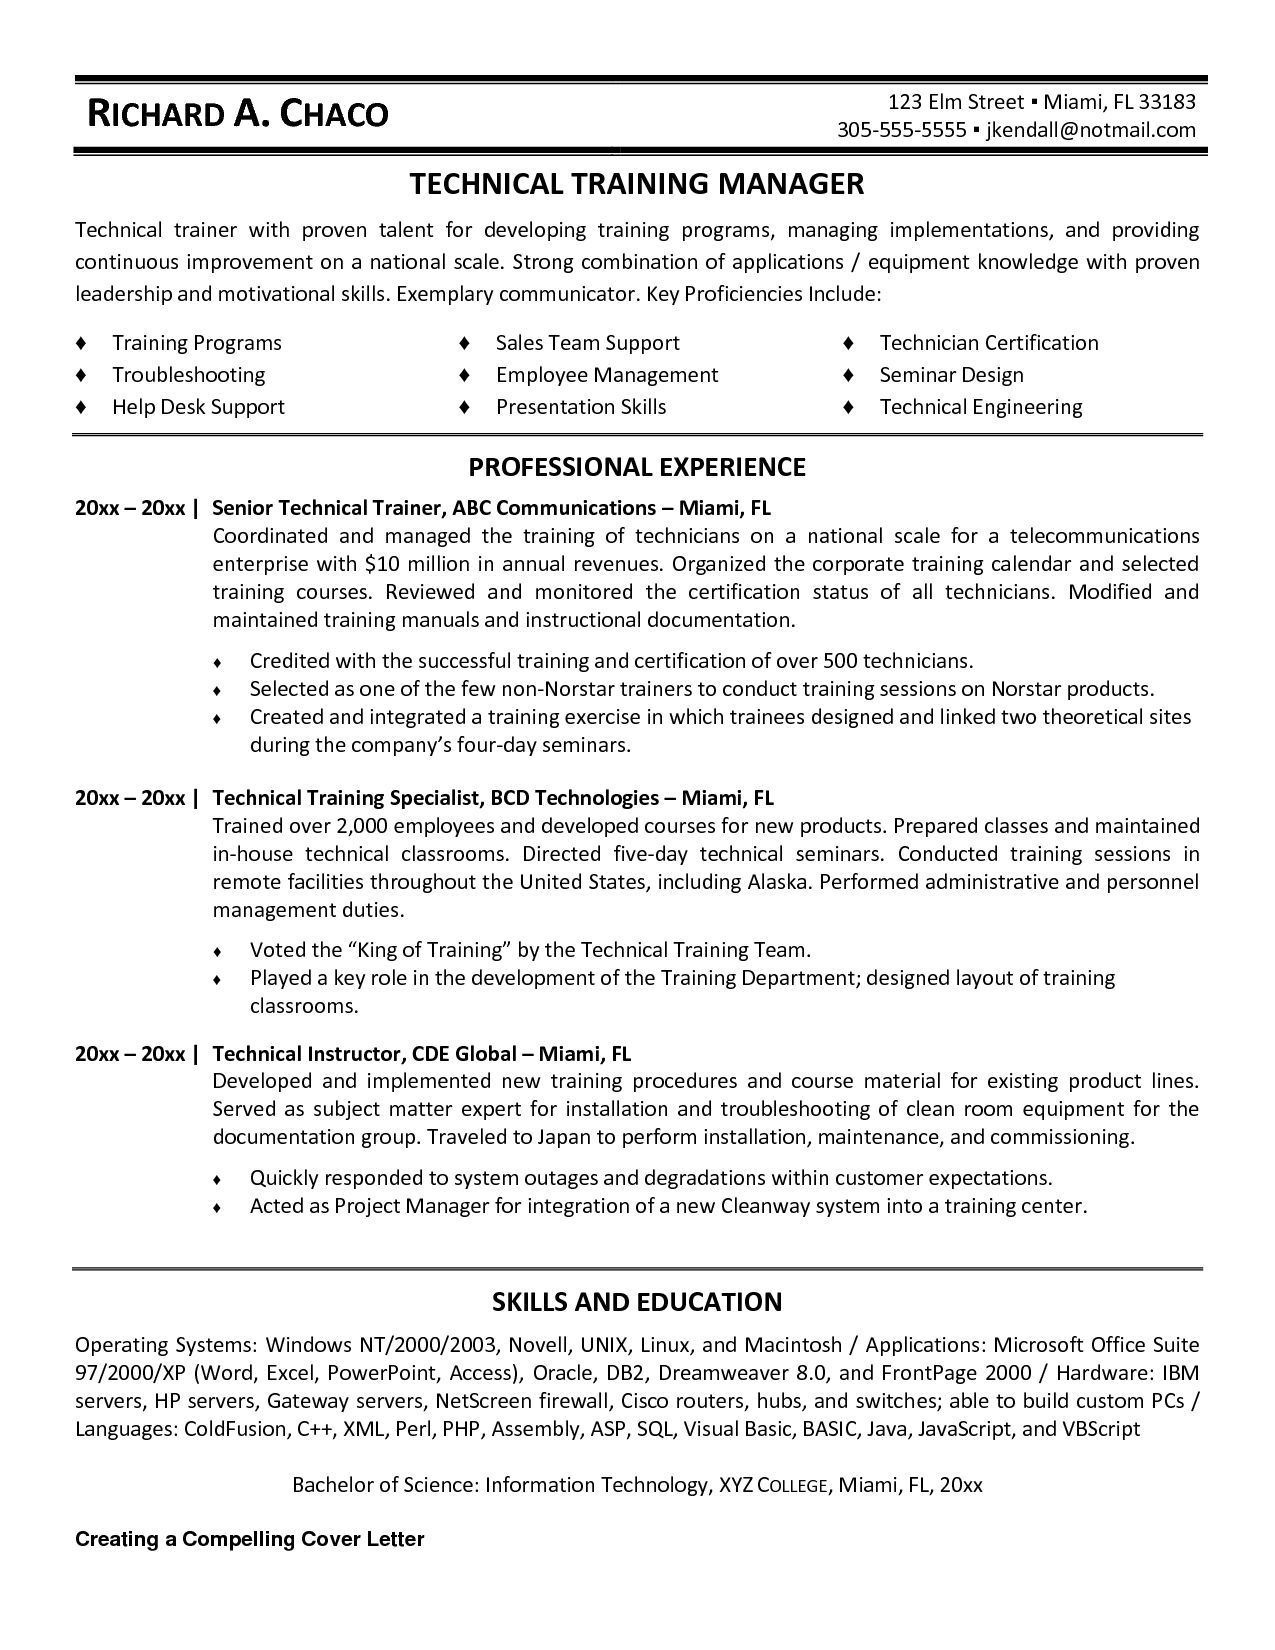 Personal Trainer Resume Objective Personal Trainer Resume Sample